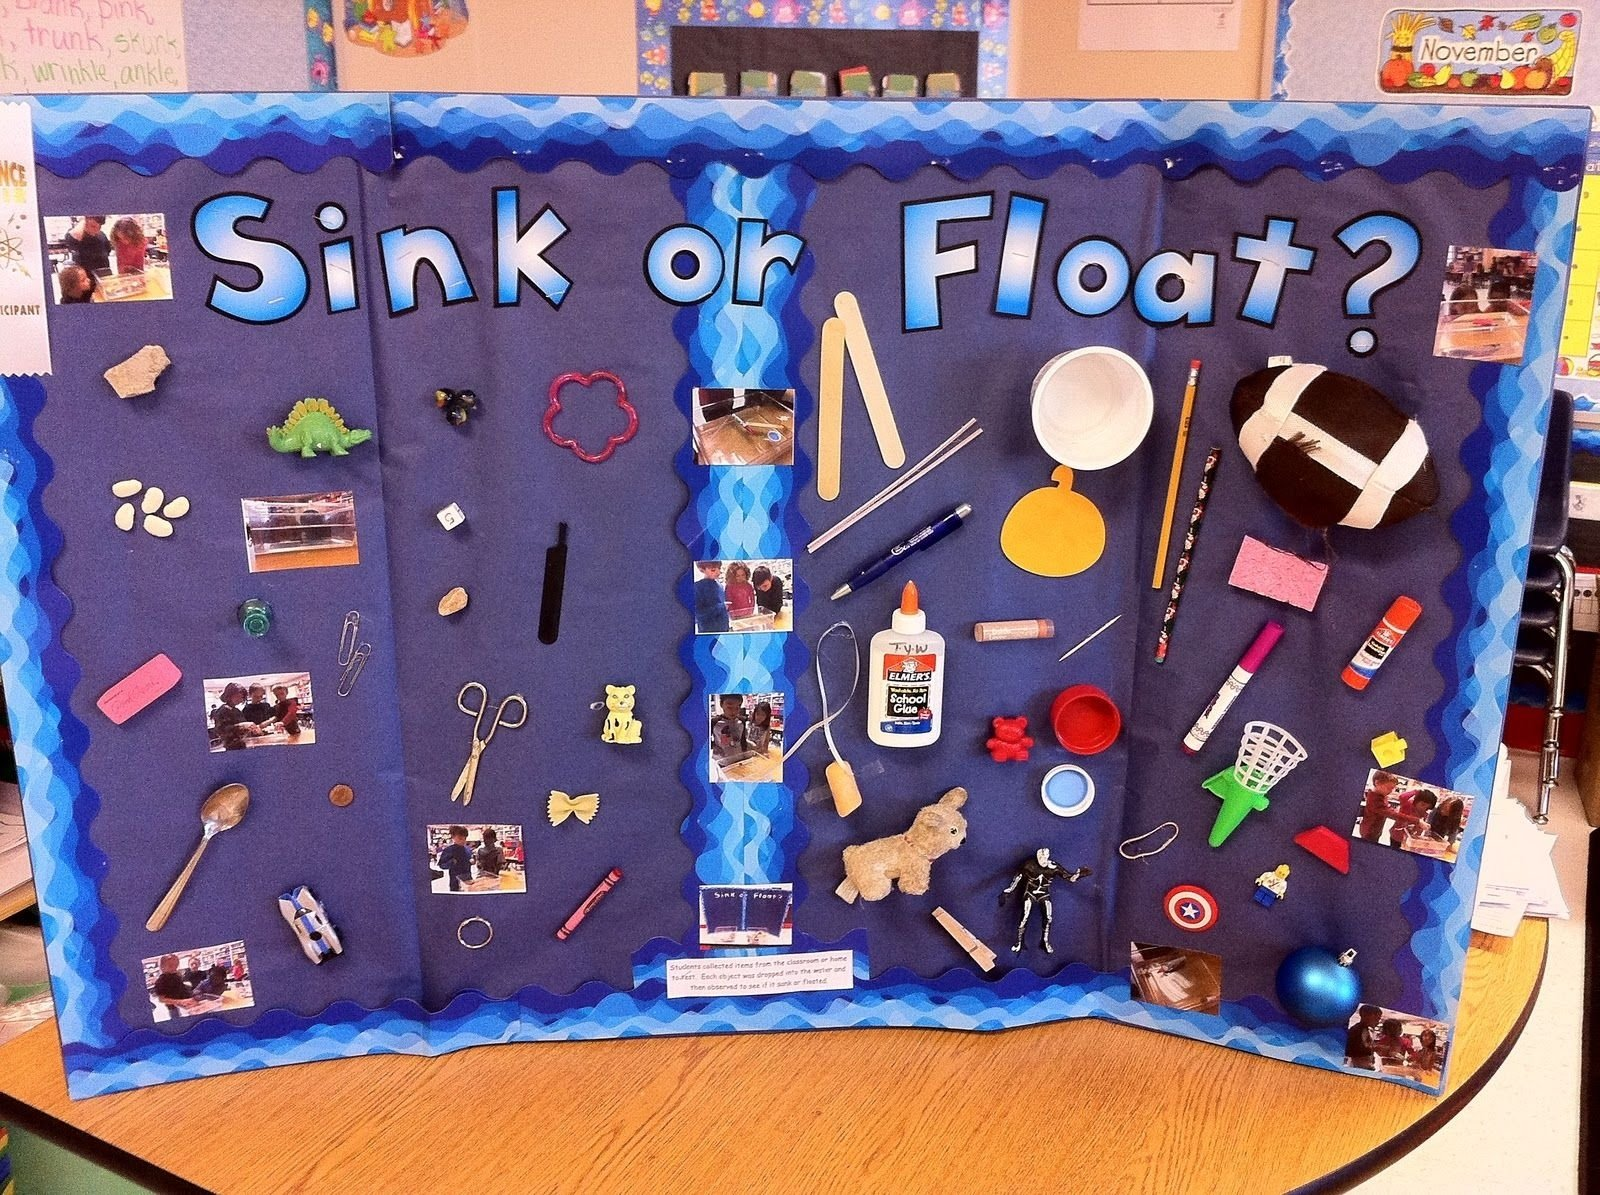 10 Cute Science Project Ideas For 1St Graders weather science projects with pics for 1st graders posted 1 2020